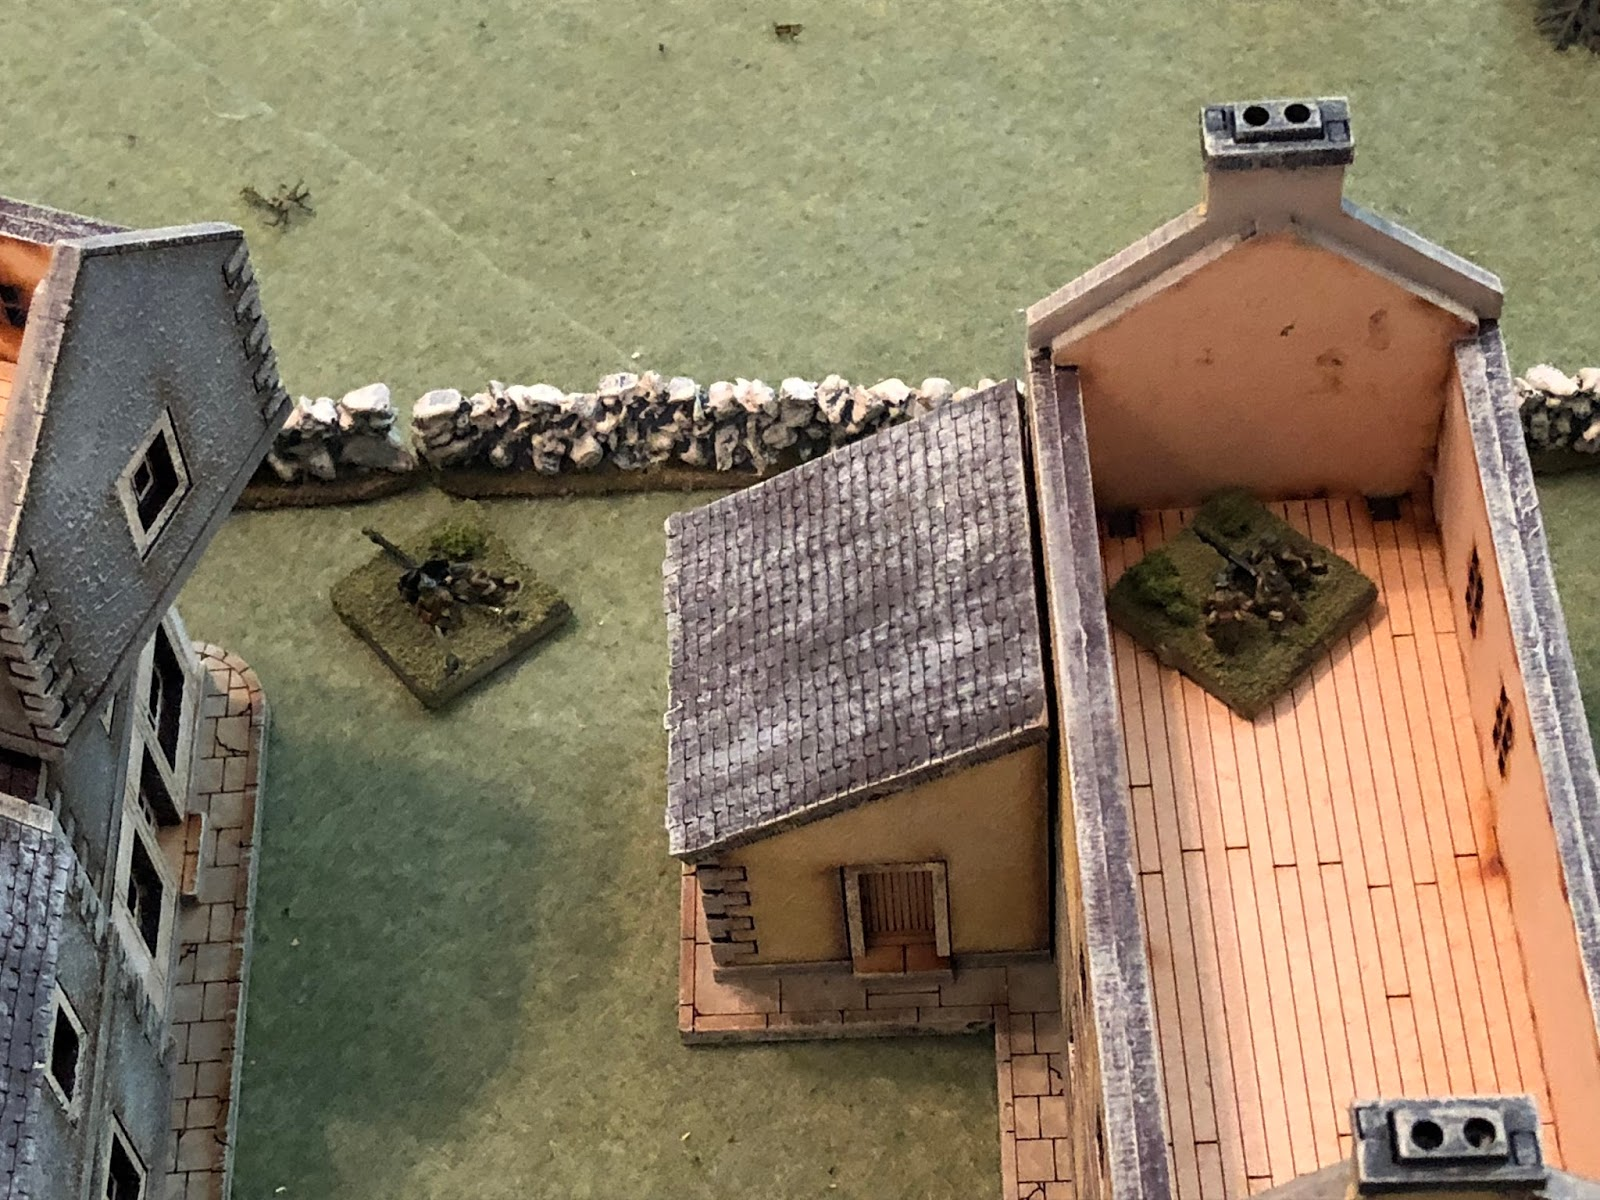 With his 2nd Platoon temporarily hors de combat, Major Renaut commits his Weapons Platoon: the tripod-mounted Hotchkiss on the 2nd floor in the far south (2nd Platoon is in the building at bottom left), and the 25mm anti-tank gun at ground level, below.  *I told the boy he needed to put the ATG in the spot where he expected the most tanks to be, and he understood, but he just wasn't able as neither one of us had any success getting our blinds to move once we got troops on the table.